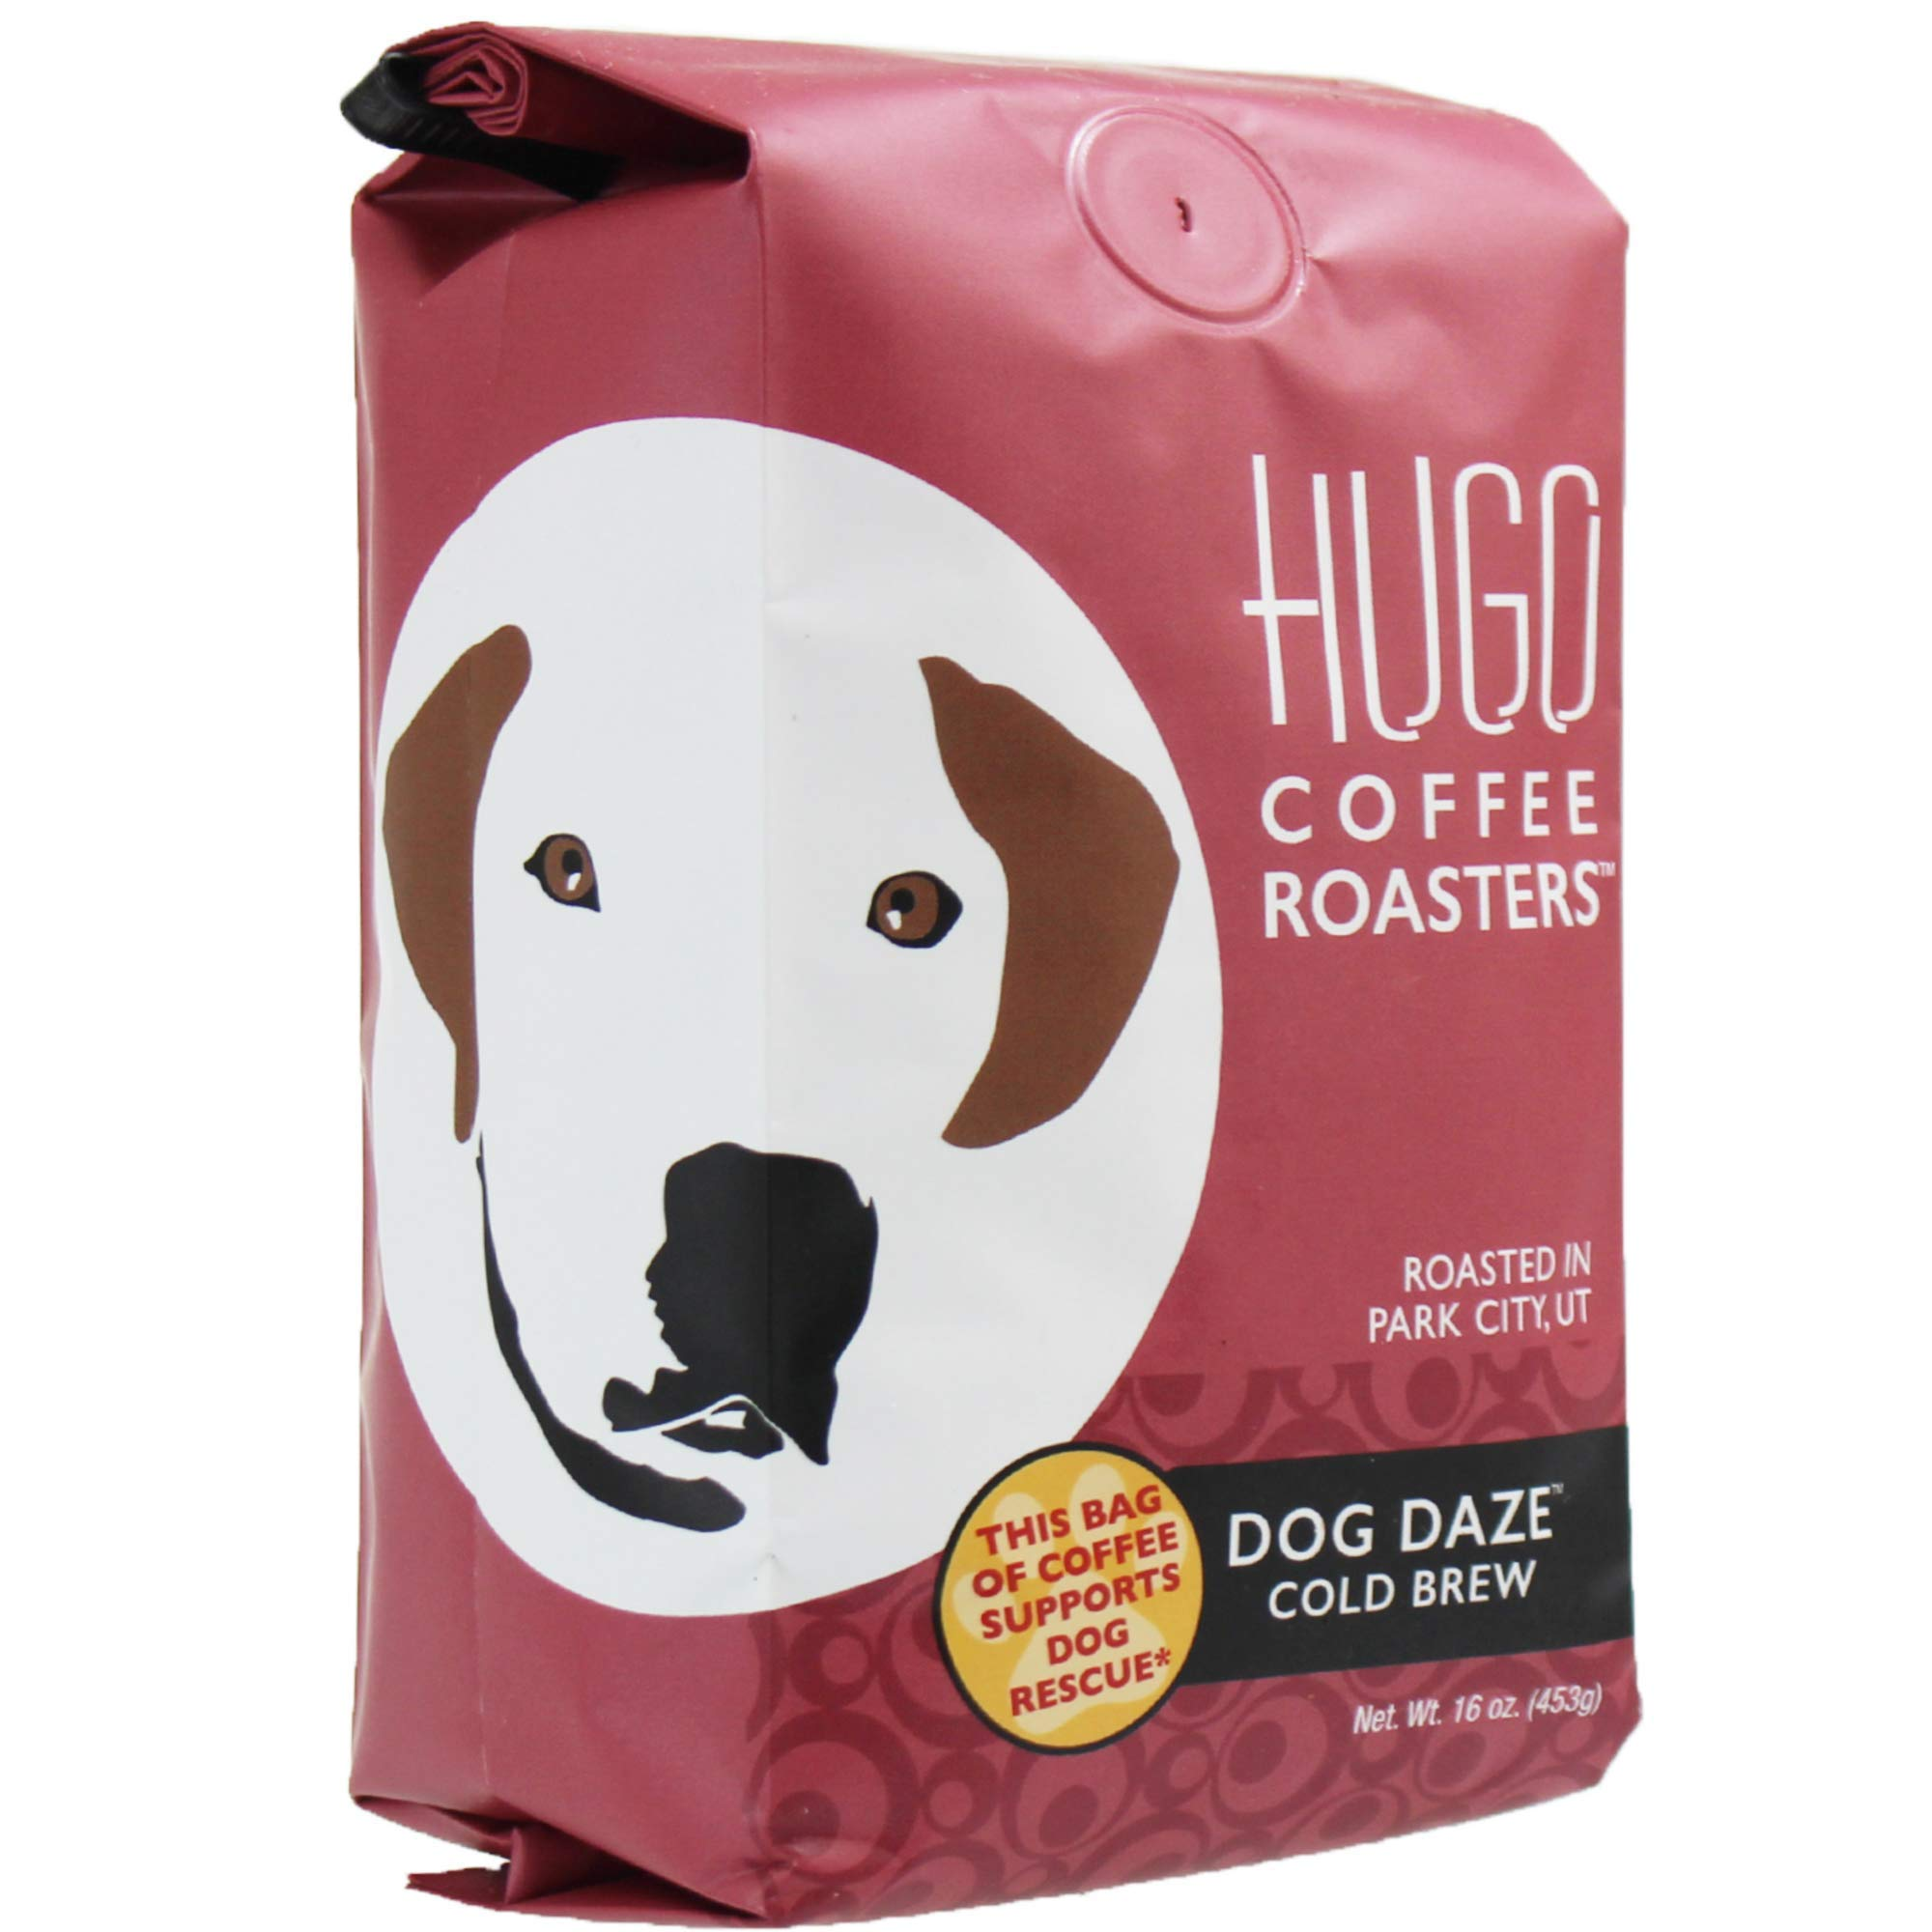 Hugo Coffee | Dog Daze Cold Brew, Coarse Ground, 1 Pound | Every Bag Sold Supports Dog Rescue by Hugo Coffee Roasters